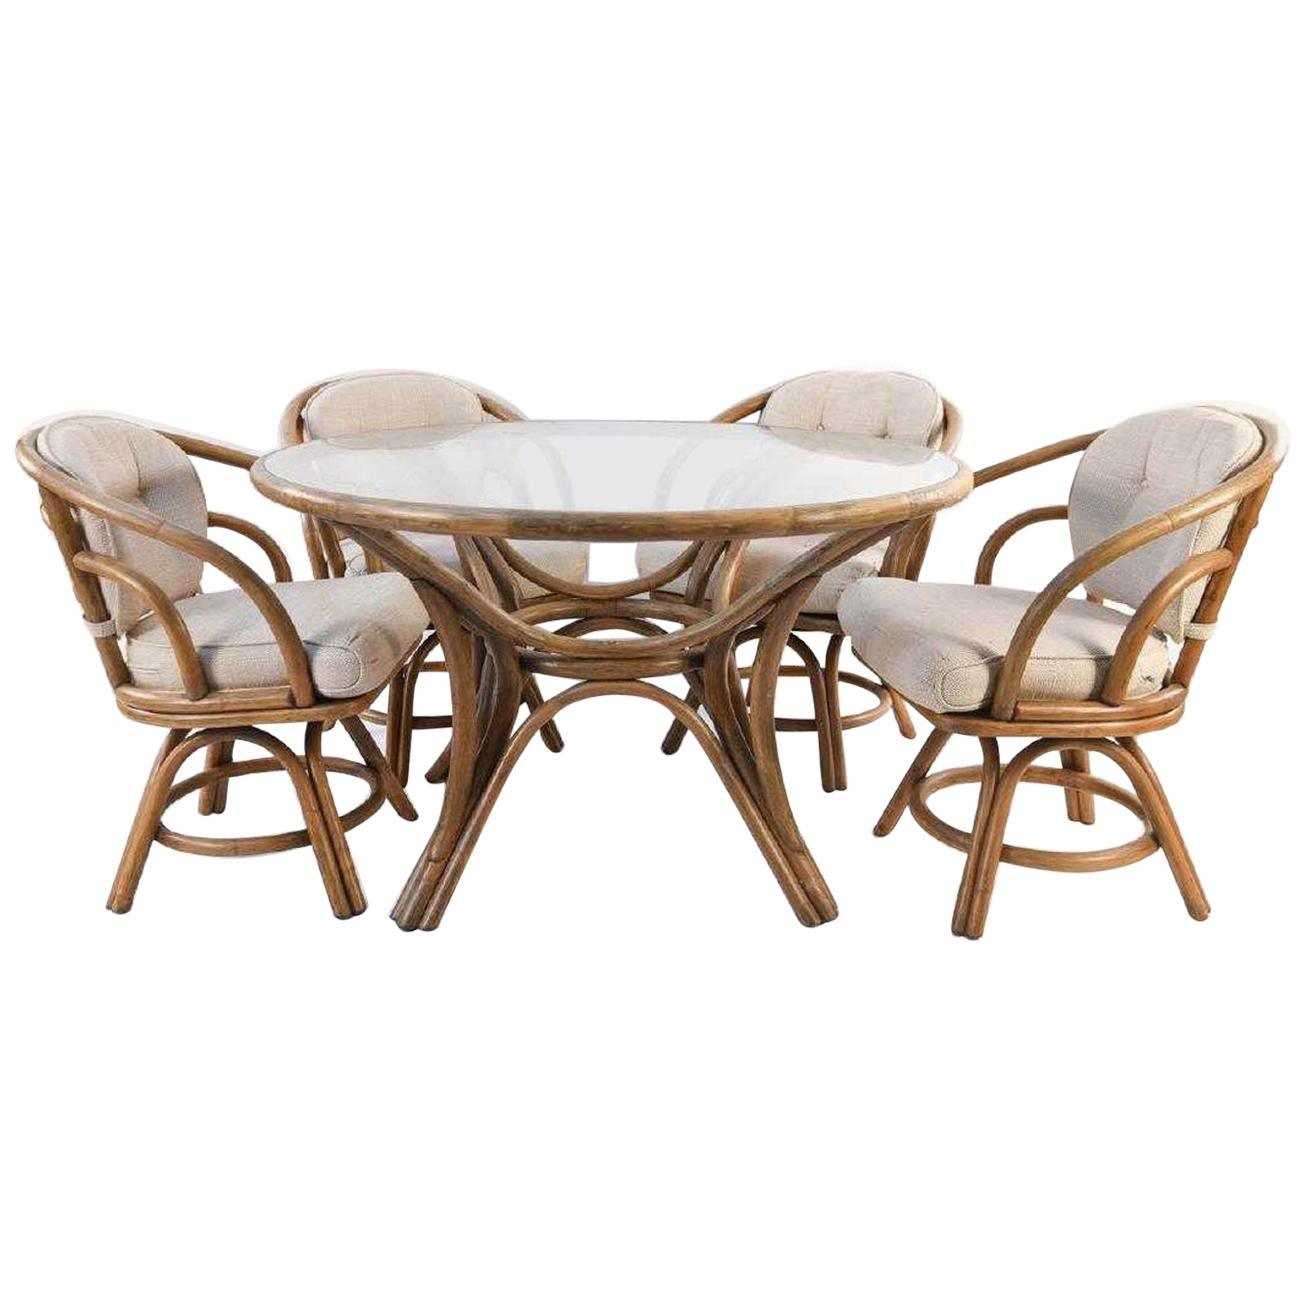 Brown Jordan Bentwood Rattan Table and Chairs Set